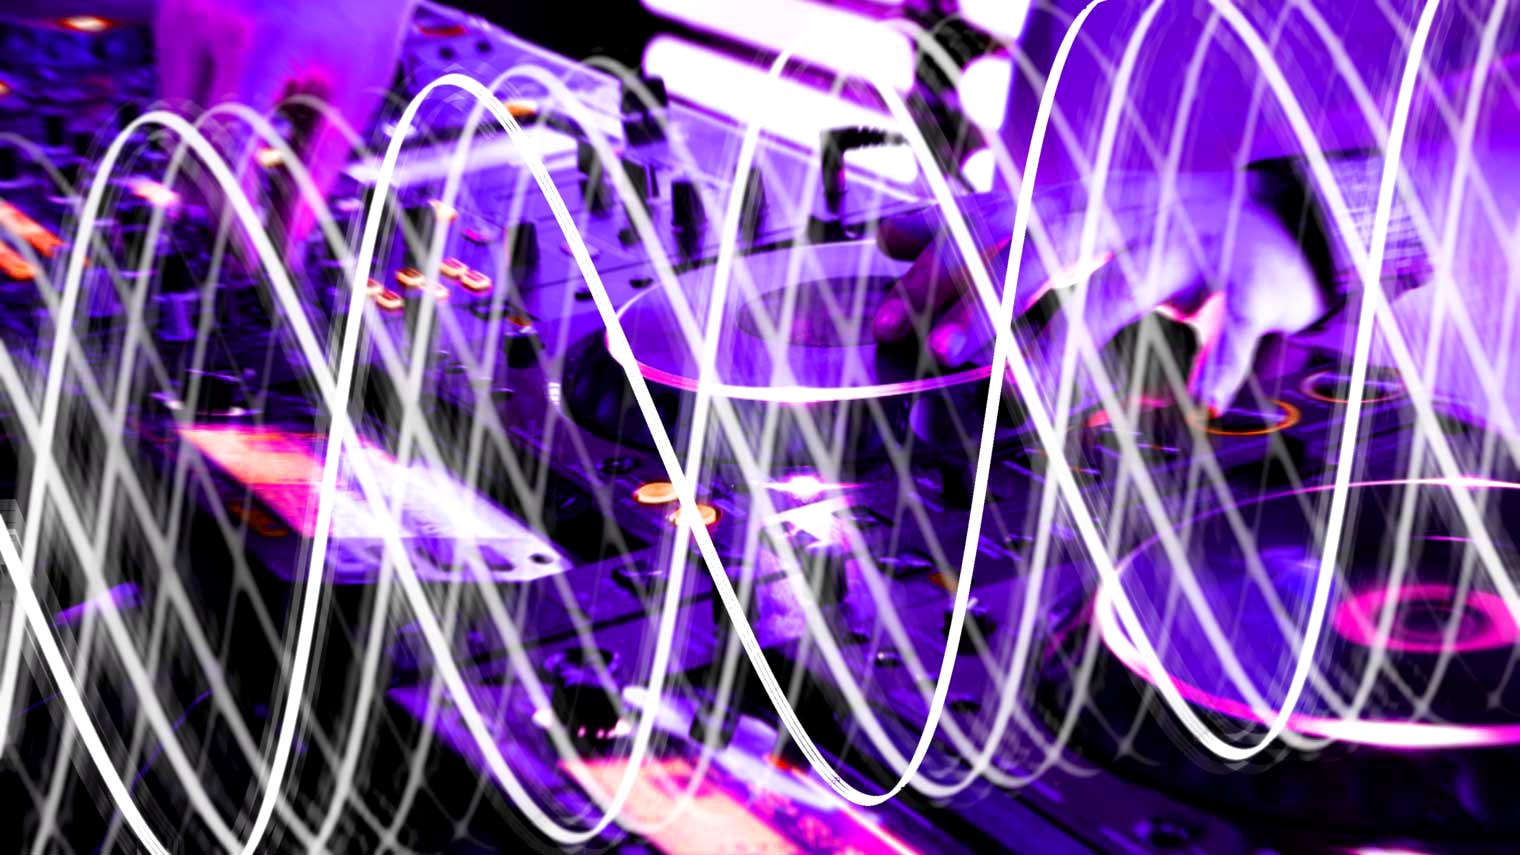 Music Visualizer, VJ Software & Beyond